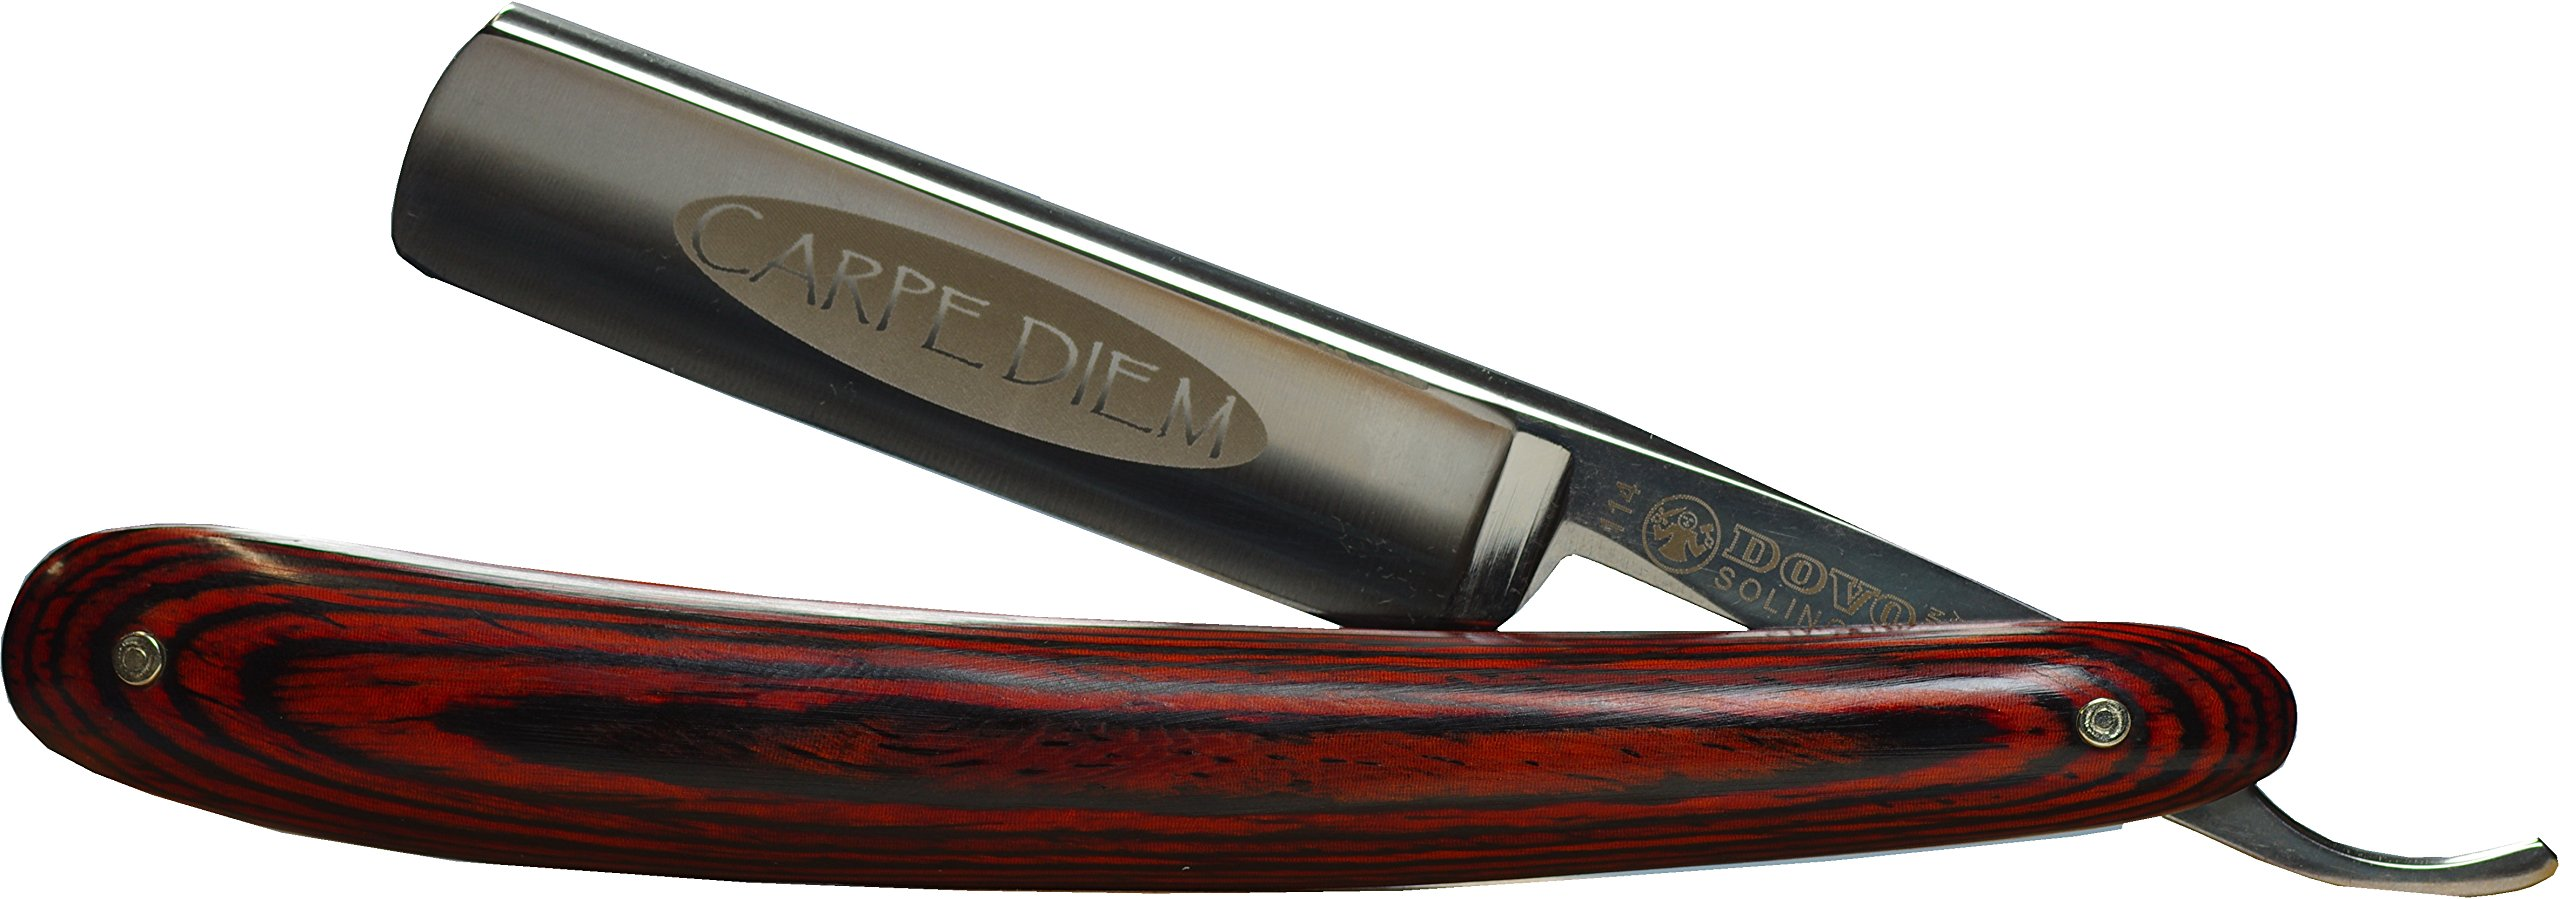 Dovo 114583 Carpe Diem 5/8'' Carbon Steel Straight Razor, Full Hollow Ground, Burgundy Multiwood Scales, with Shave Ready Option (Shave Ready, Unsealed)